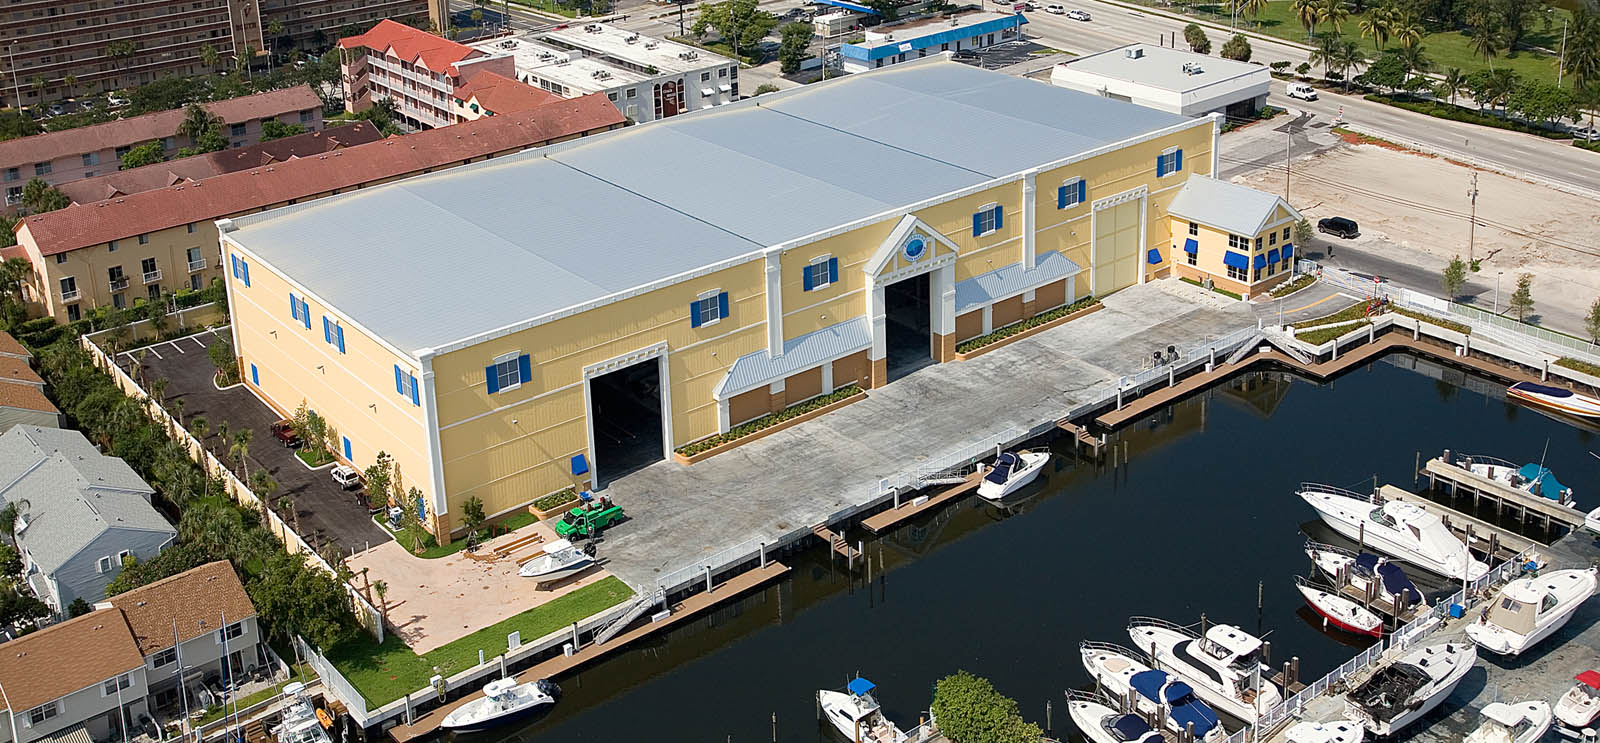 Aerial view of Pompano Beach marina